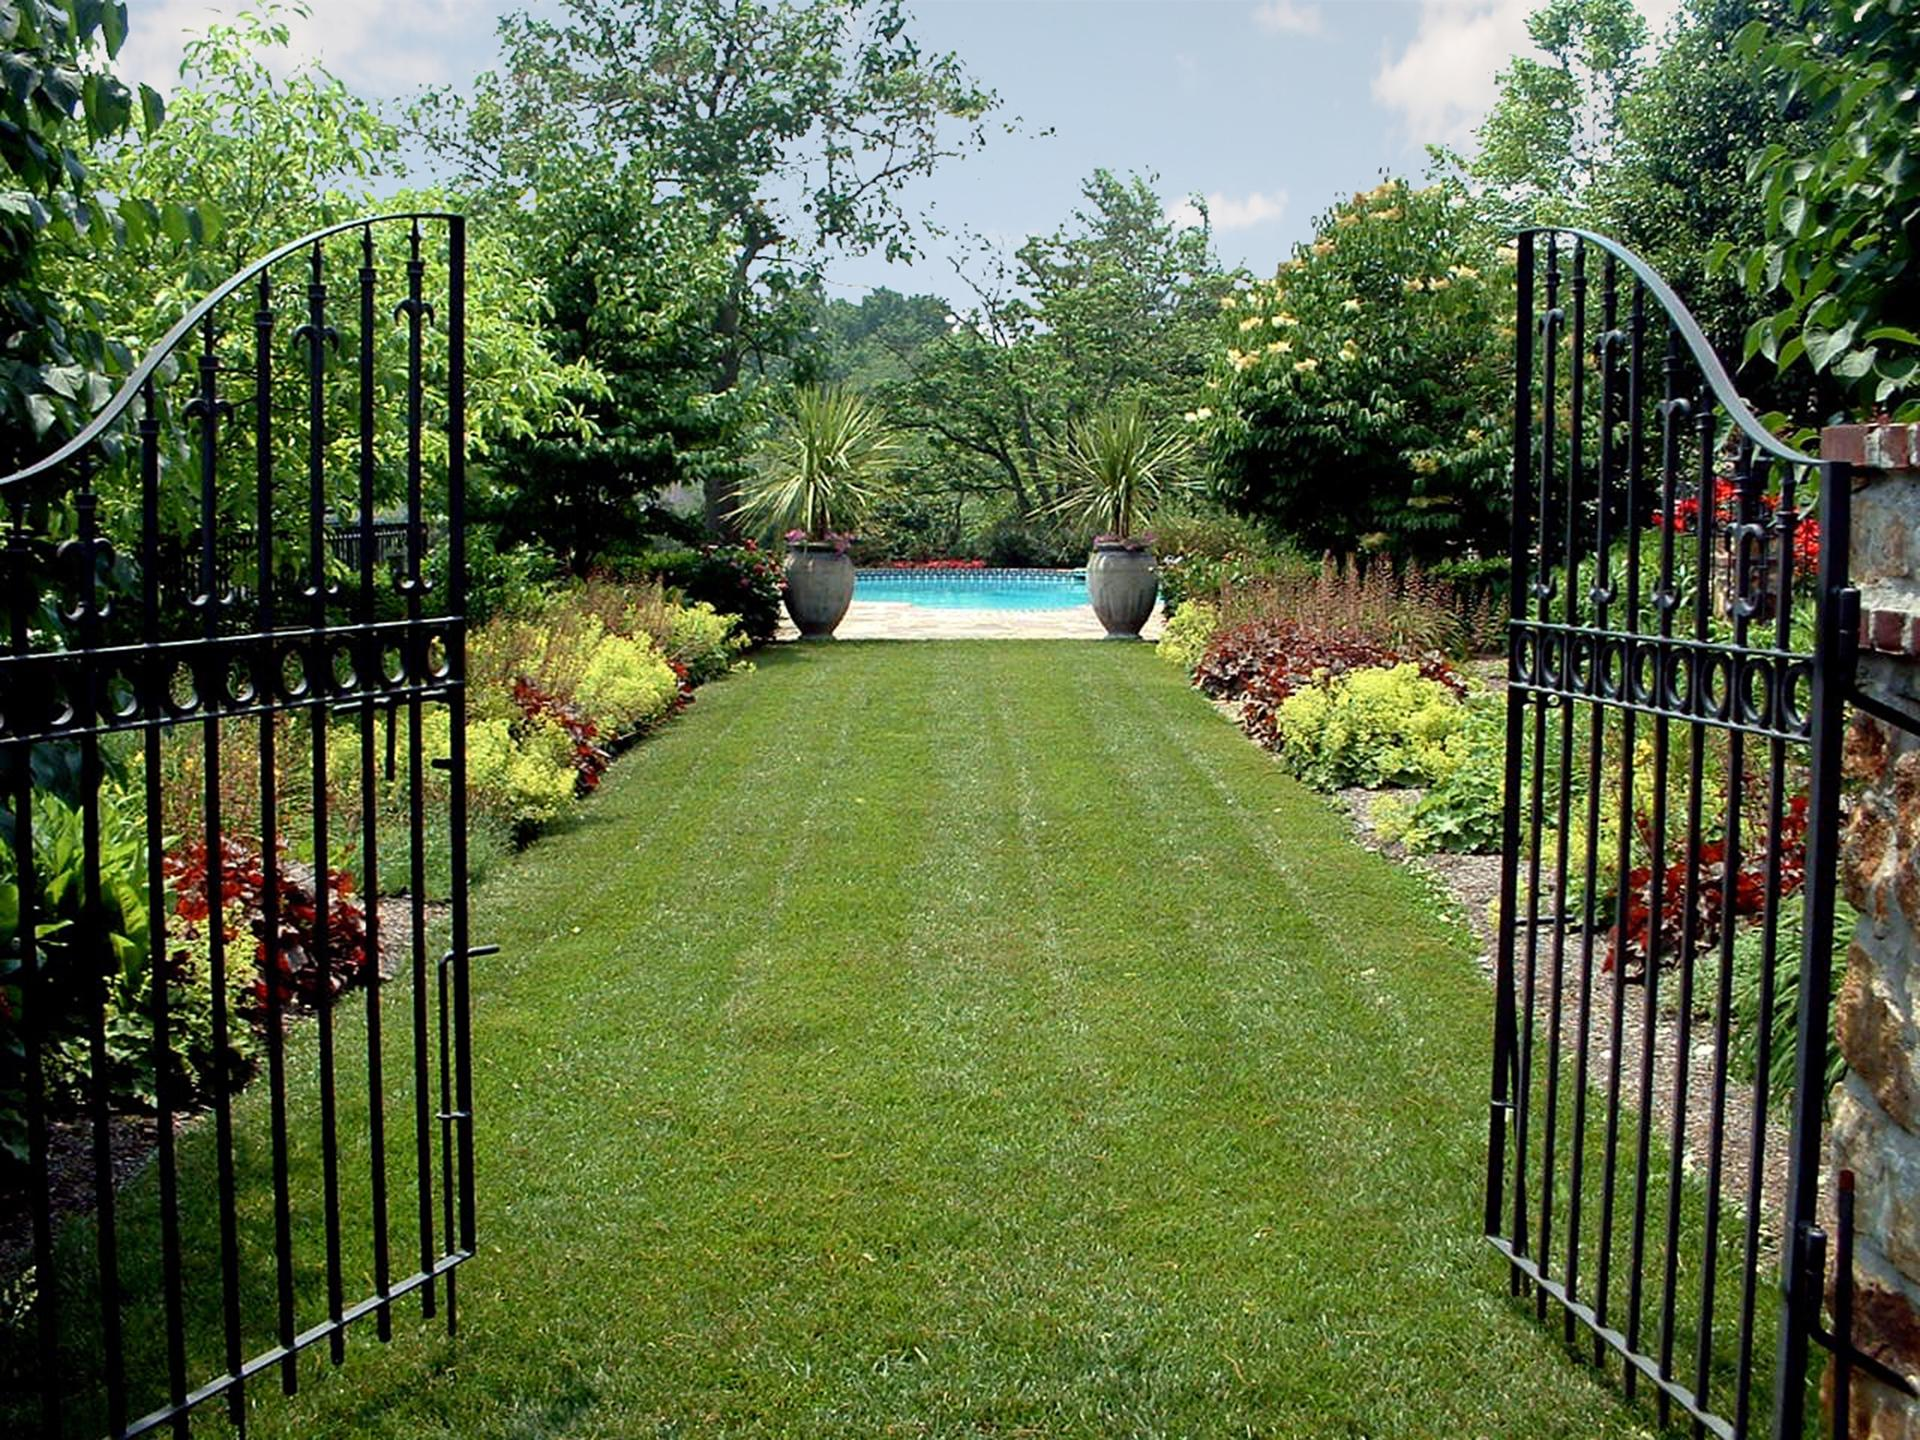 landscape-design-iron-gate-pool-gate-fencing-ideas